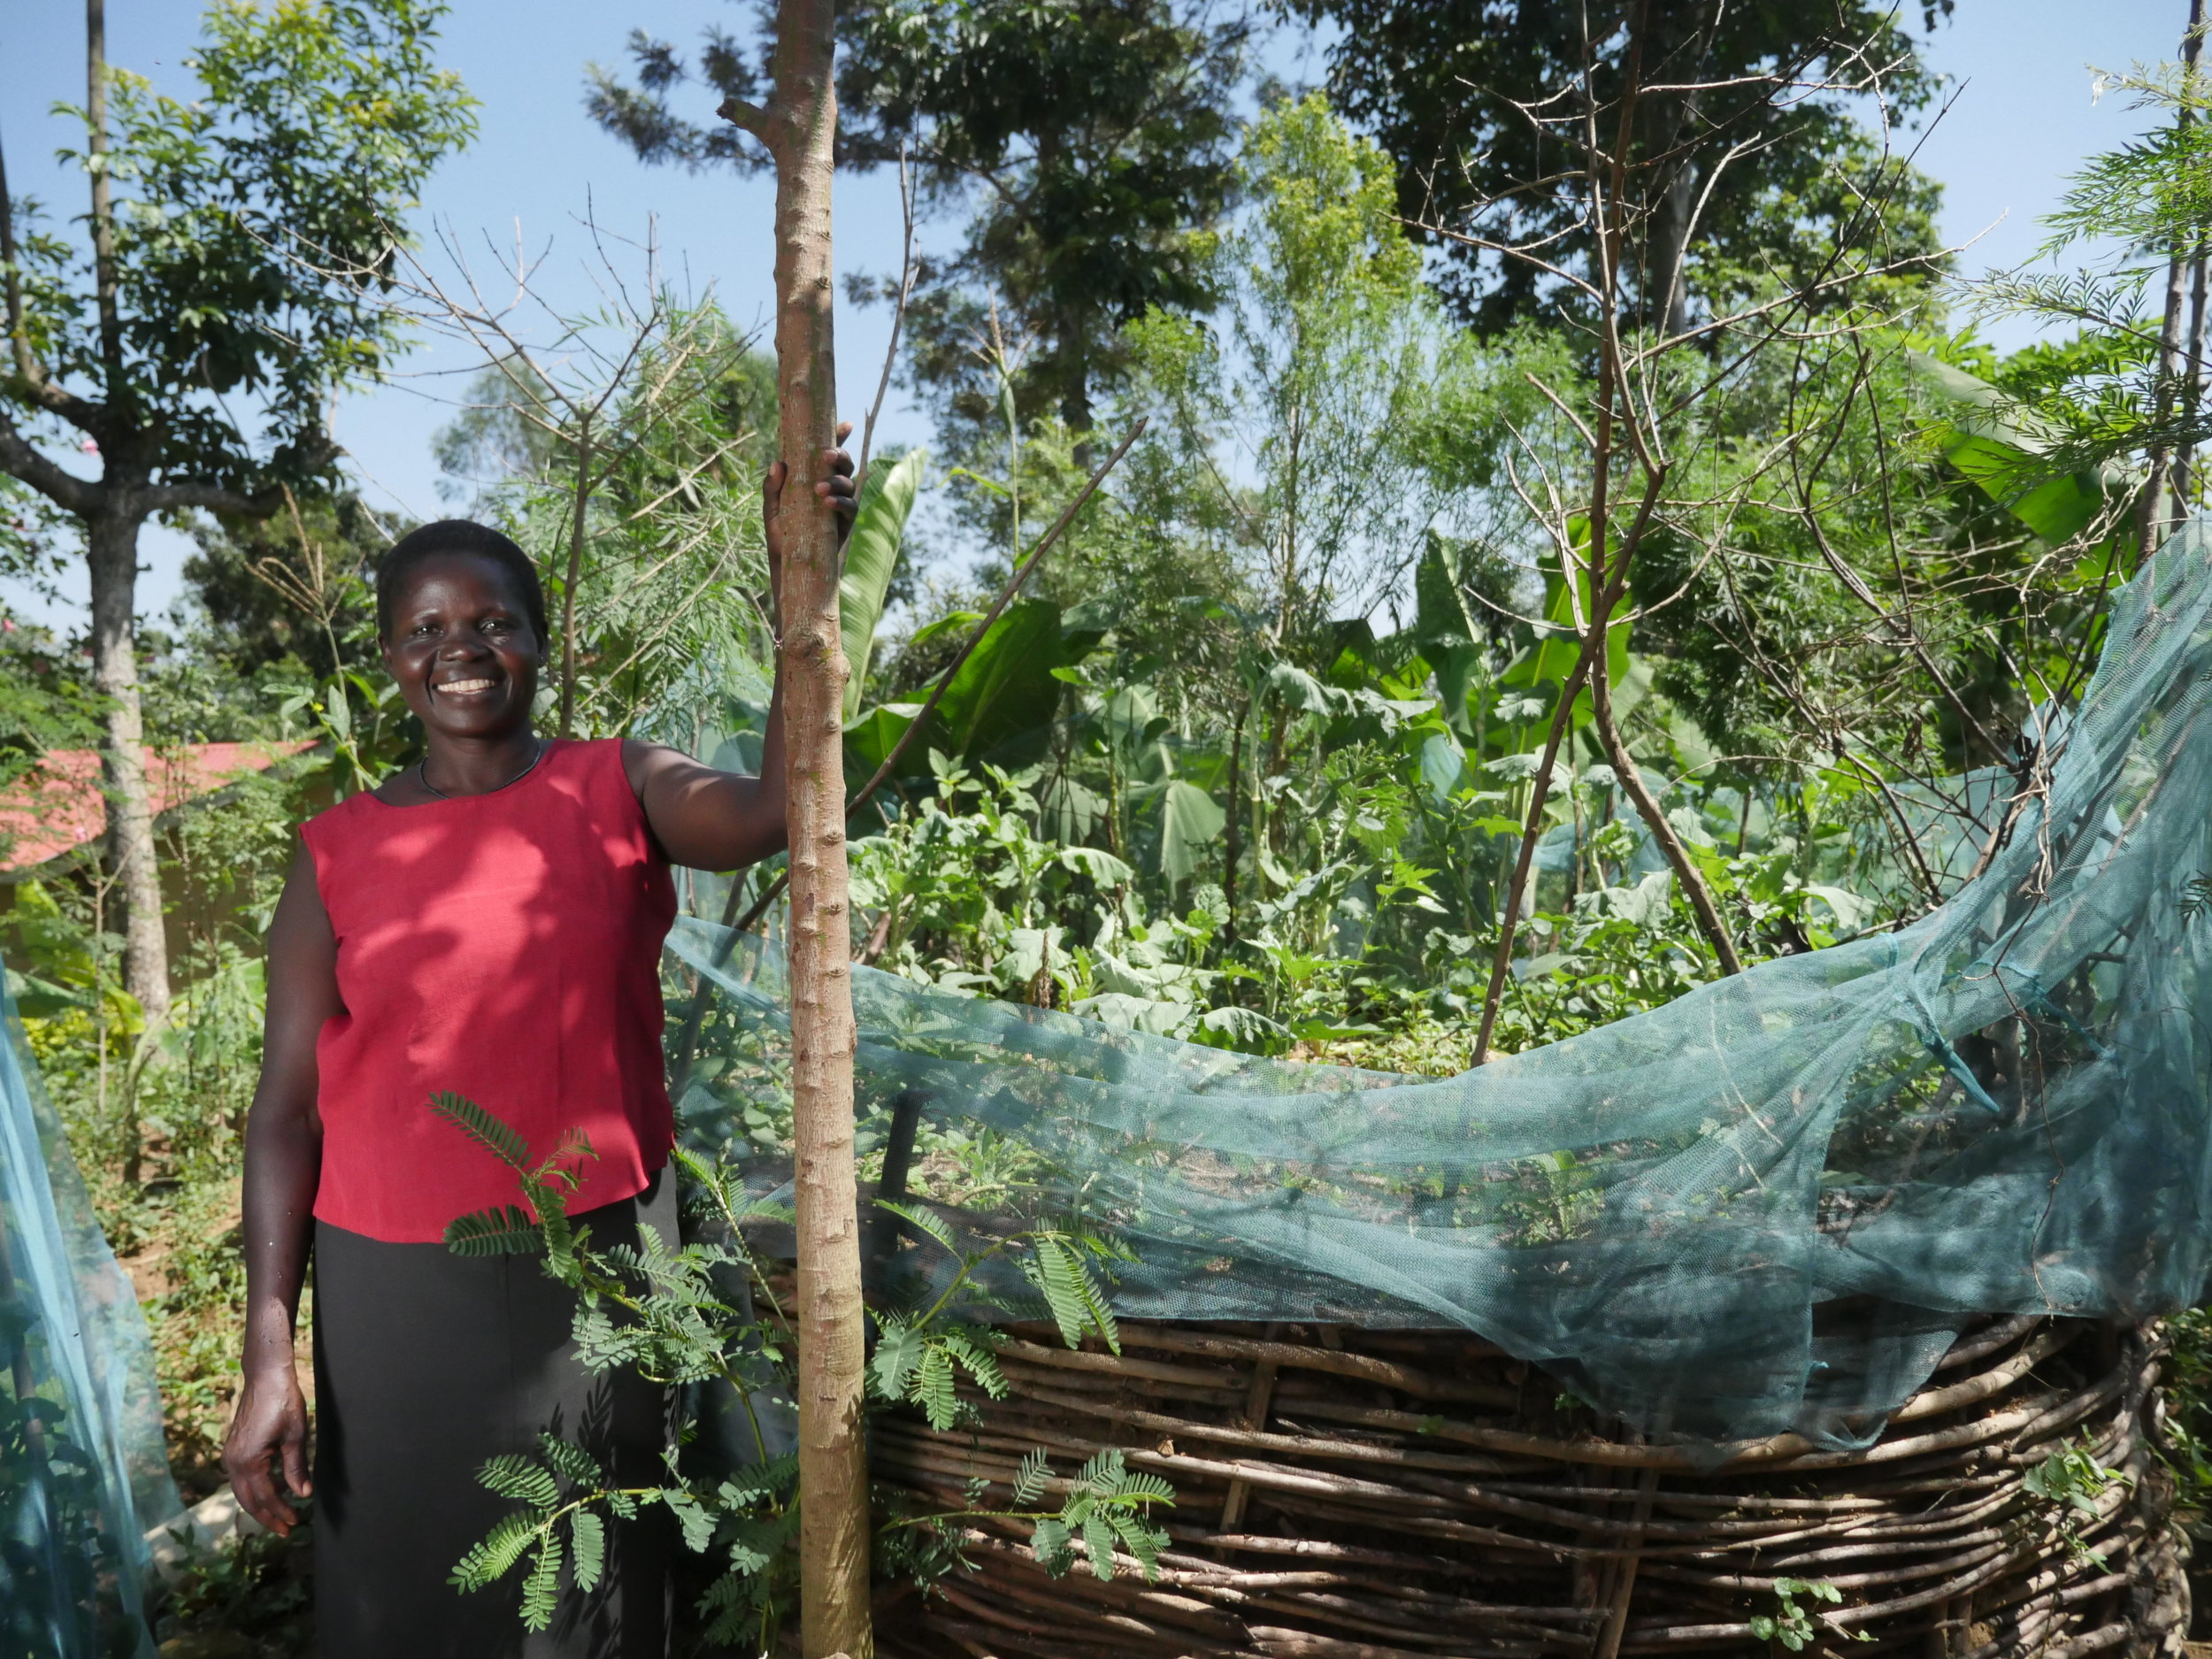 Pictured: Prisca with her water saving bag gardens in Kenya. Image credit: Send a Cow.